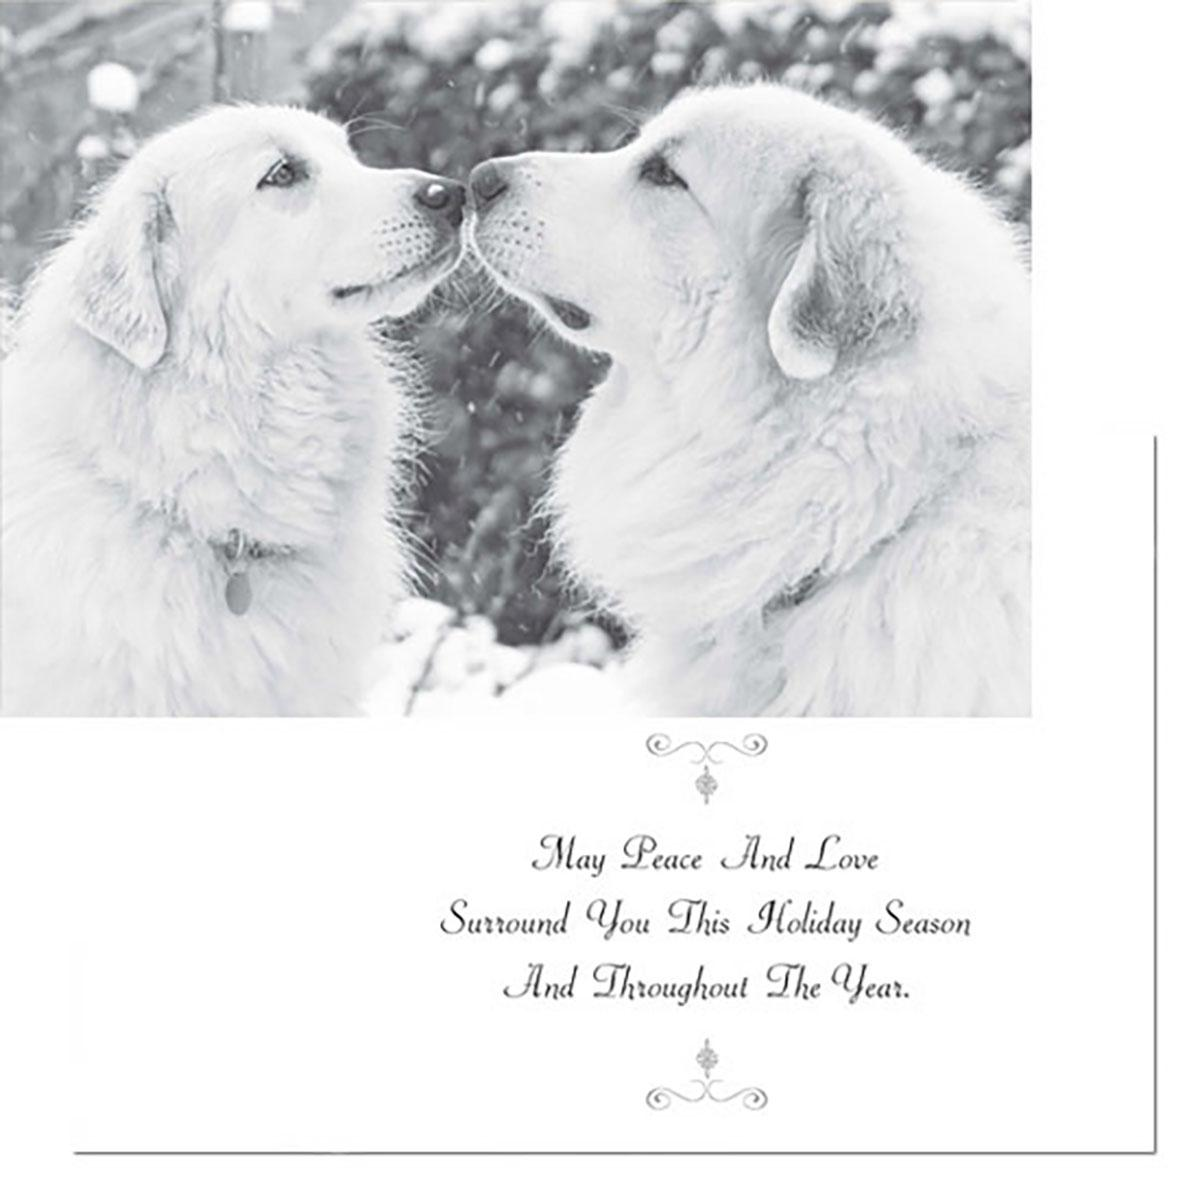 Holiday Greeting Card by Dog Speak - May Peace and Love